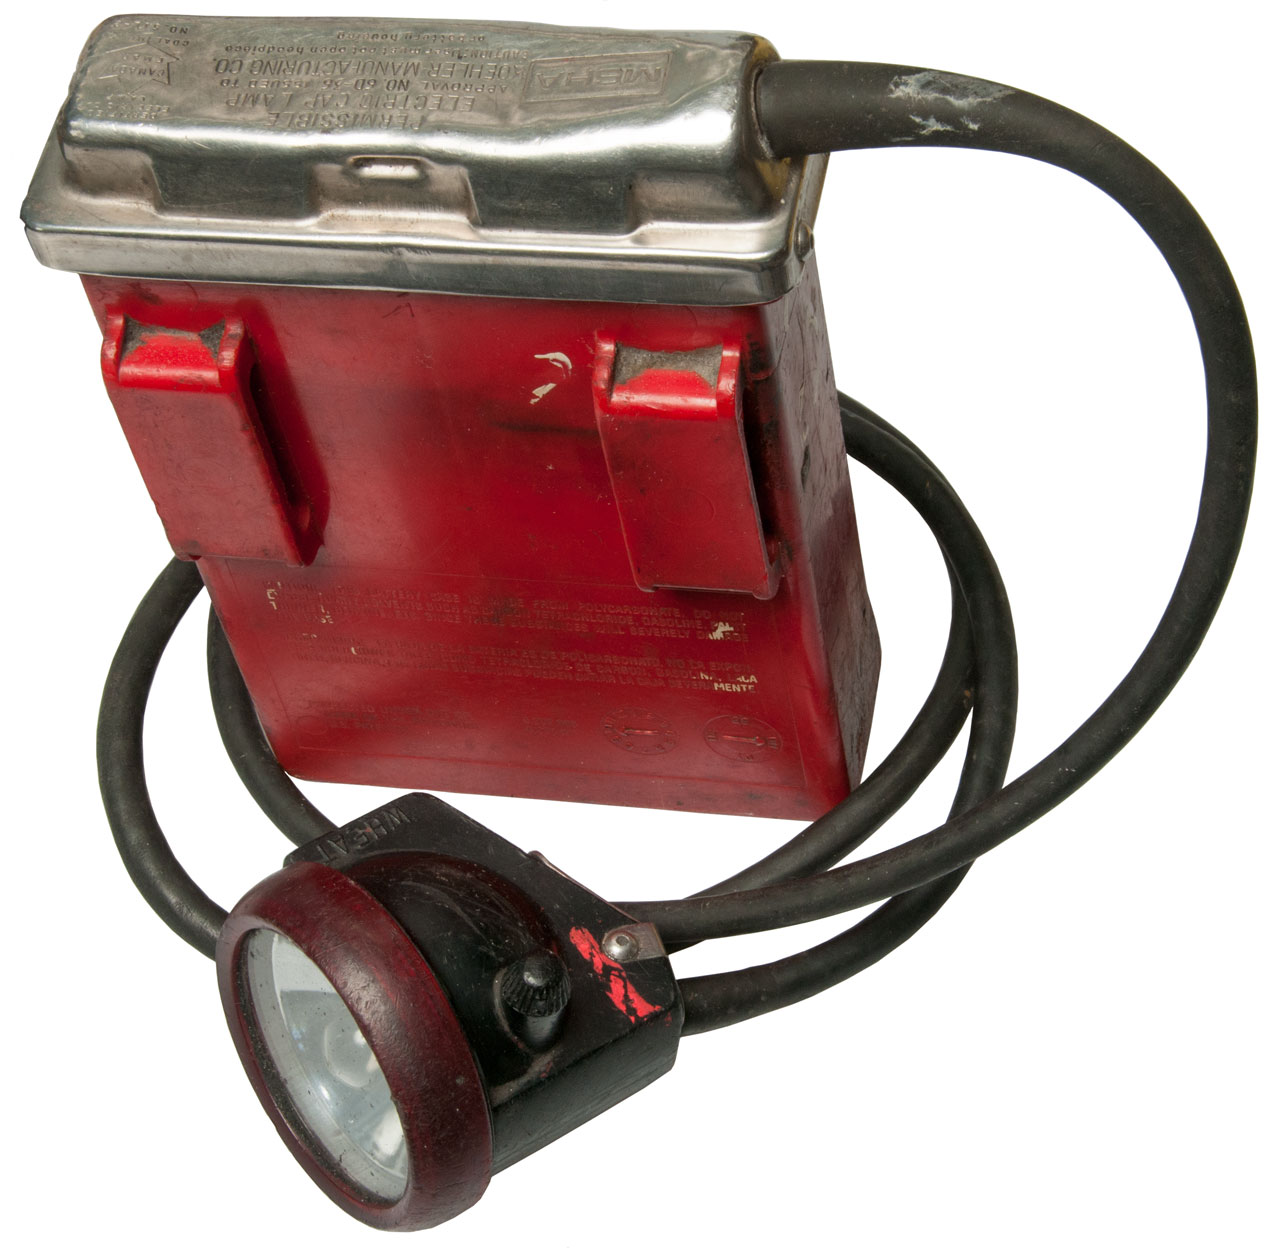 koehler flame safety lamp instructions